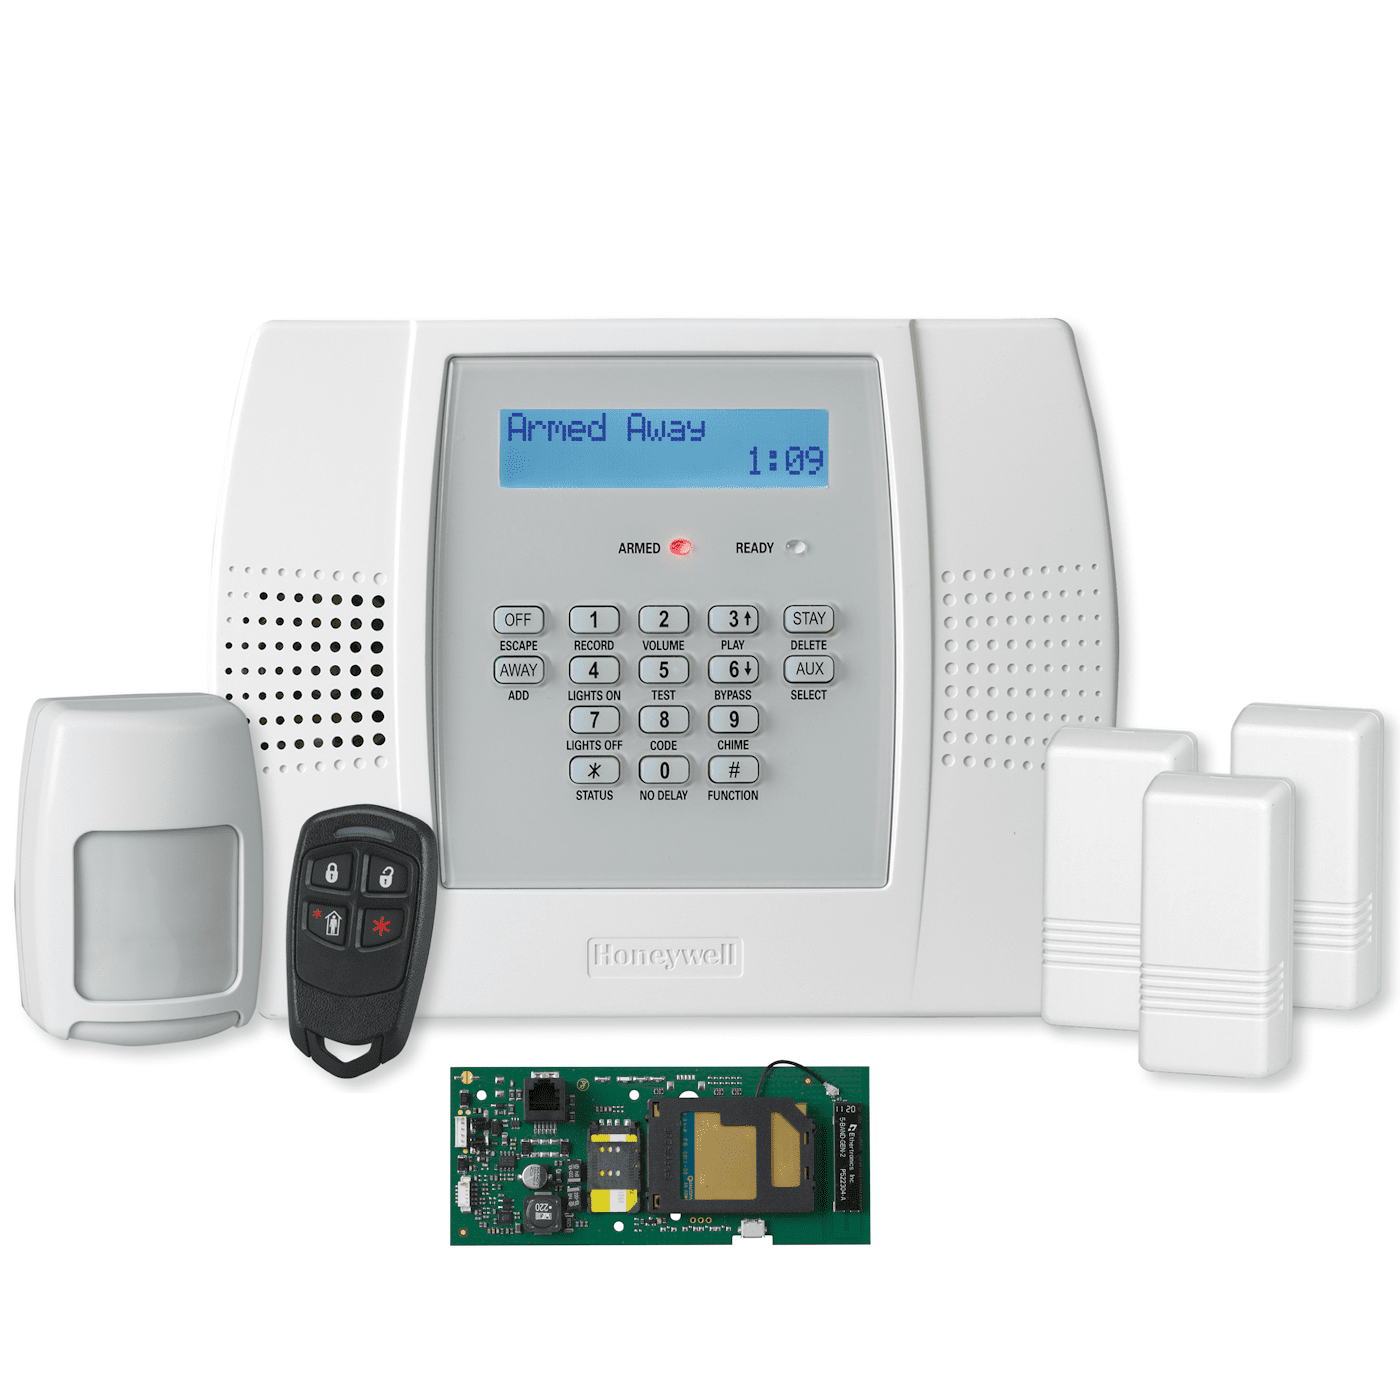 Security Keypad Wiring Diagram Page 3 And Schematics Honeywell Home Alarm Lynx System Manual Complete Diagrams U2022 Rh 207 246 78 188